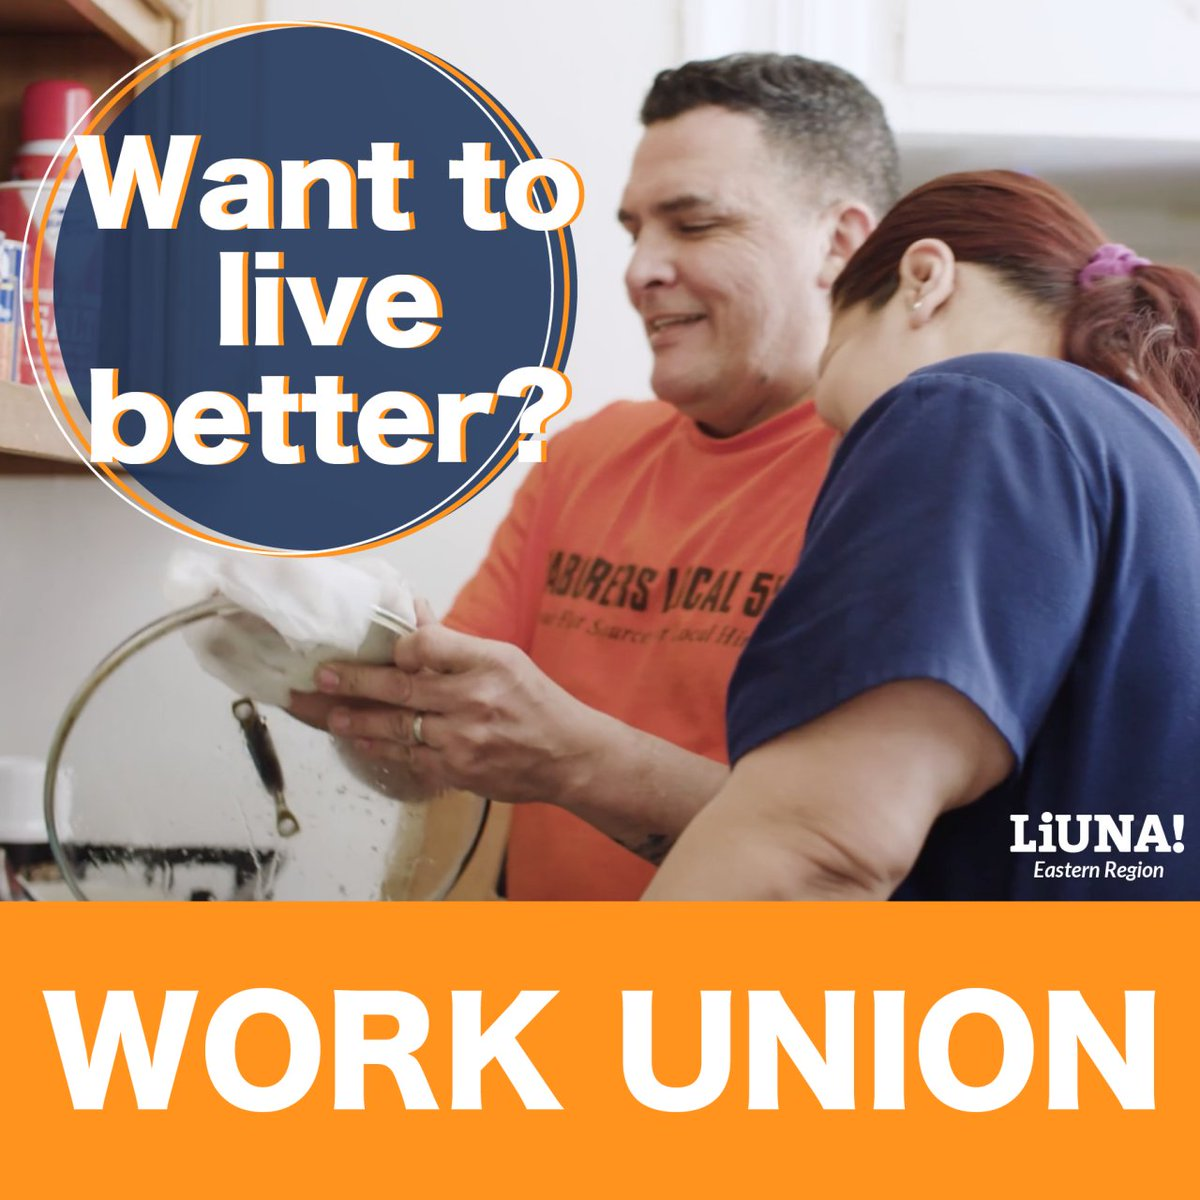 Do you want better pay? Do you want better training? Do you want better working conditions? Do you want better health and retirement benefits?  Do you just want to live better?  Then there's only one answer: Work #Union!  Get access to all this and more.  #LIUNA #Solidarity #1u